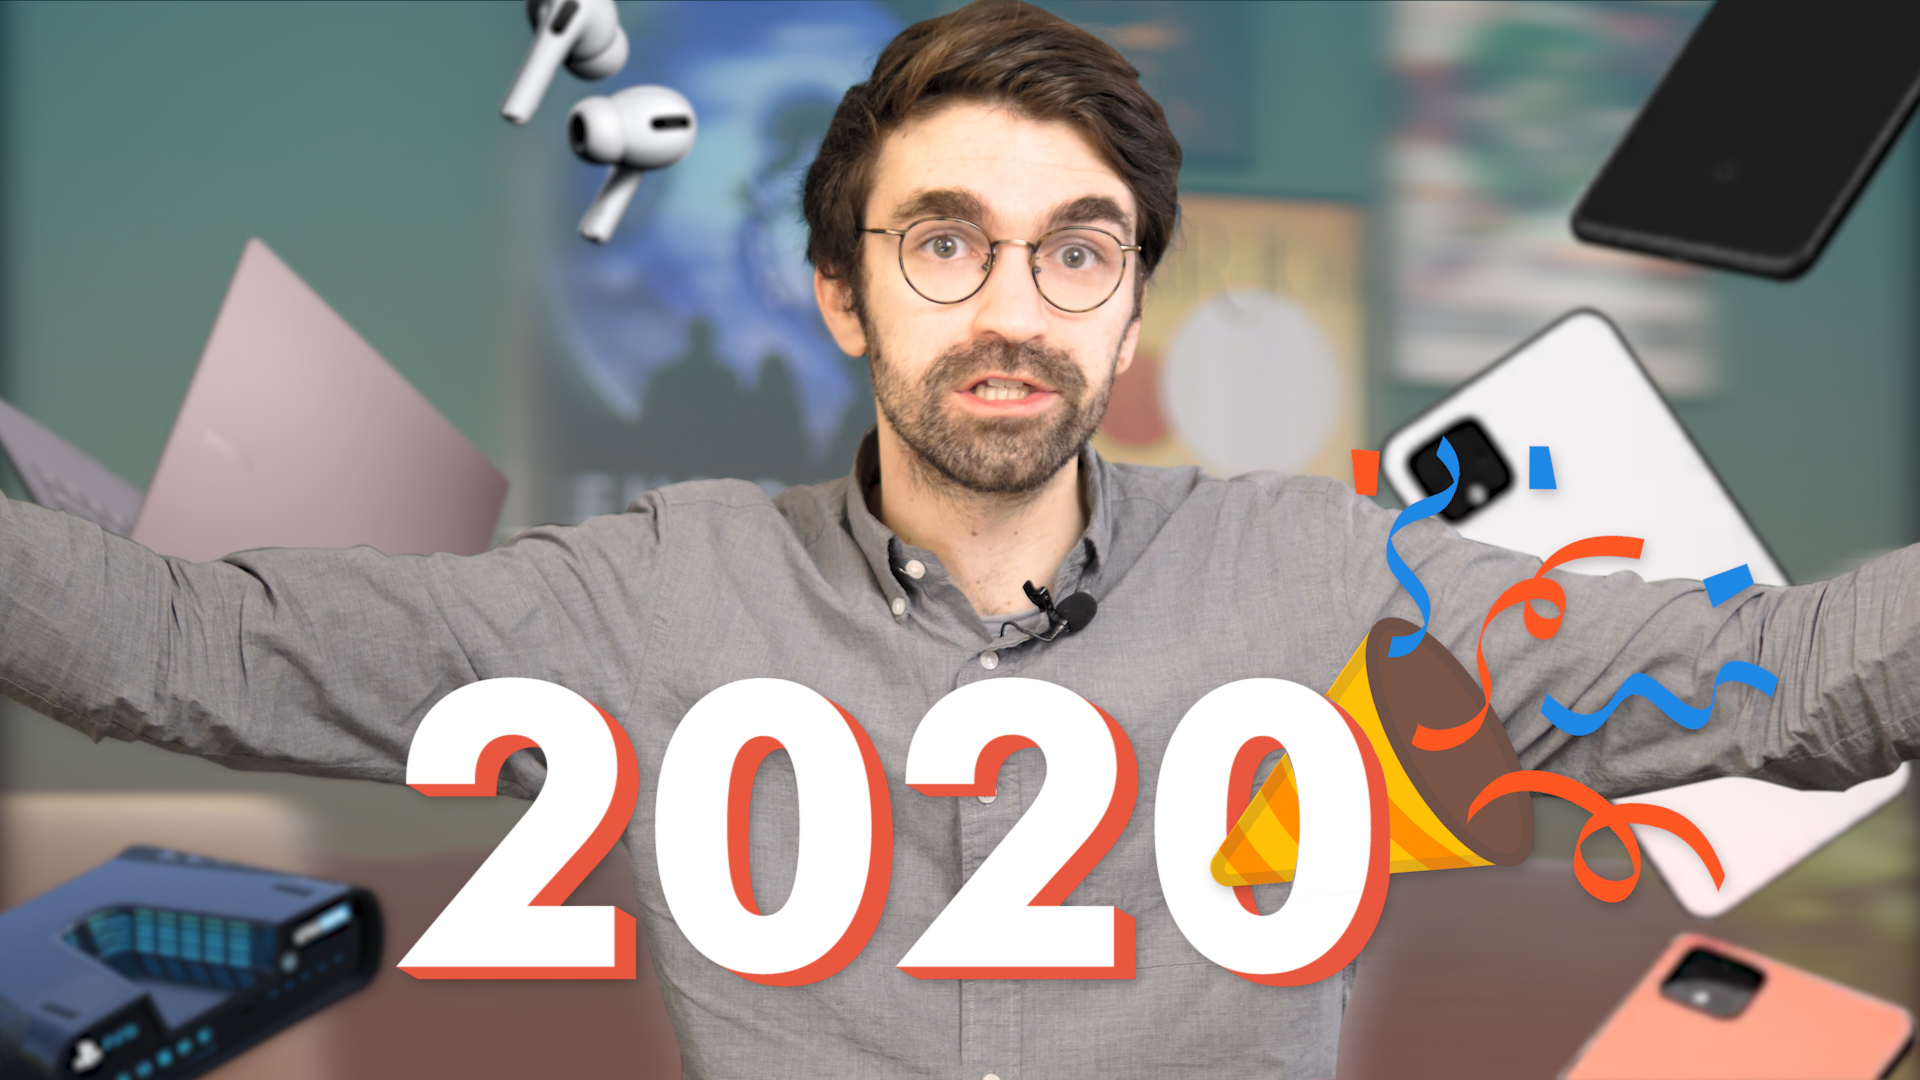 La tech qu'on attend vraiment en 2020 !